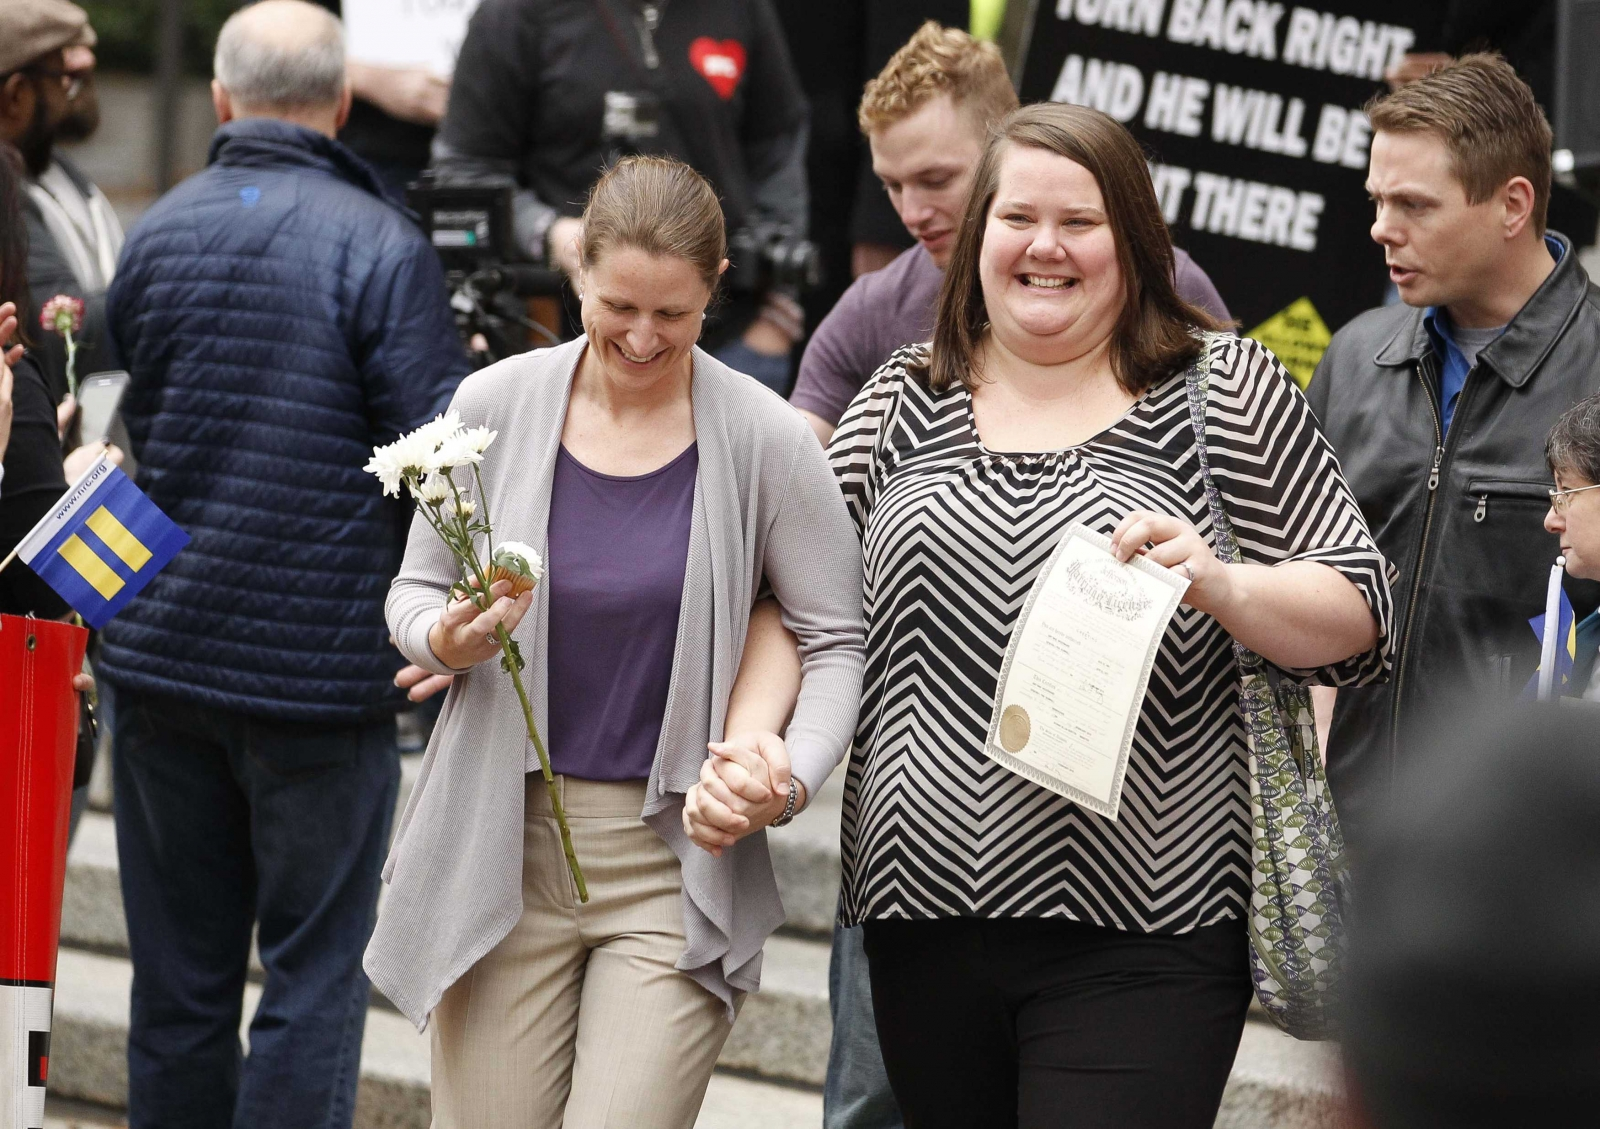 Same-sex couples marry in Alabama after US Supreme Court ruling